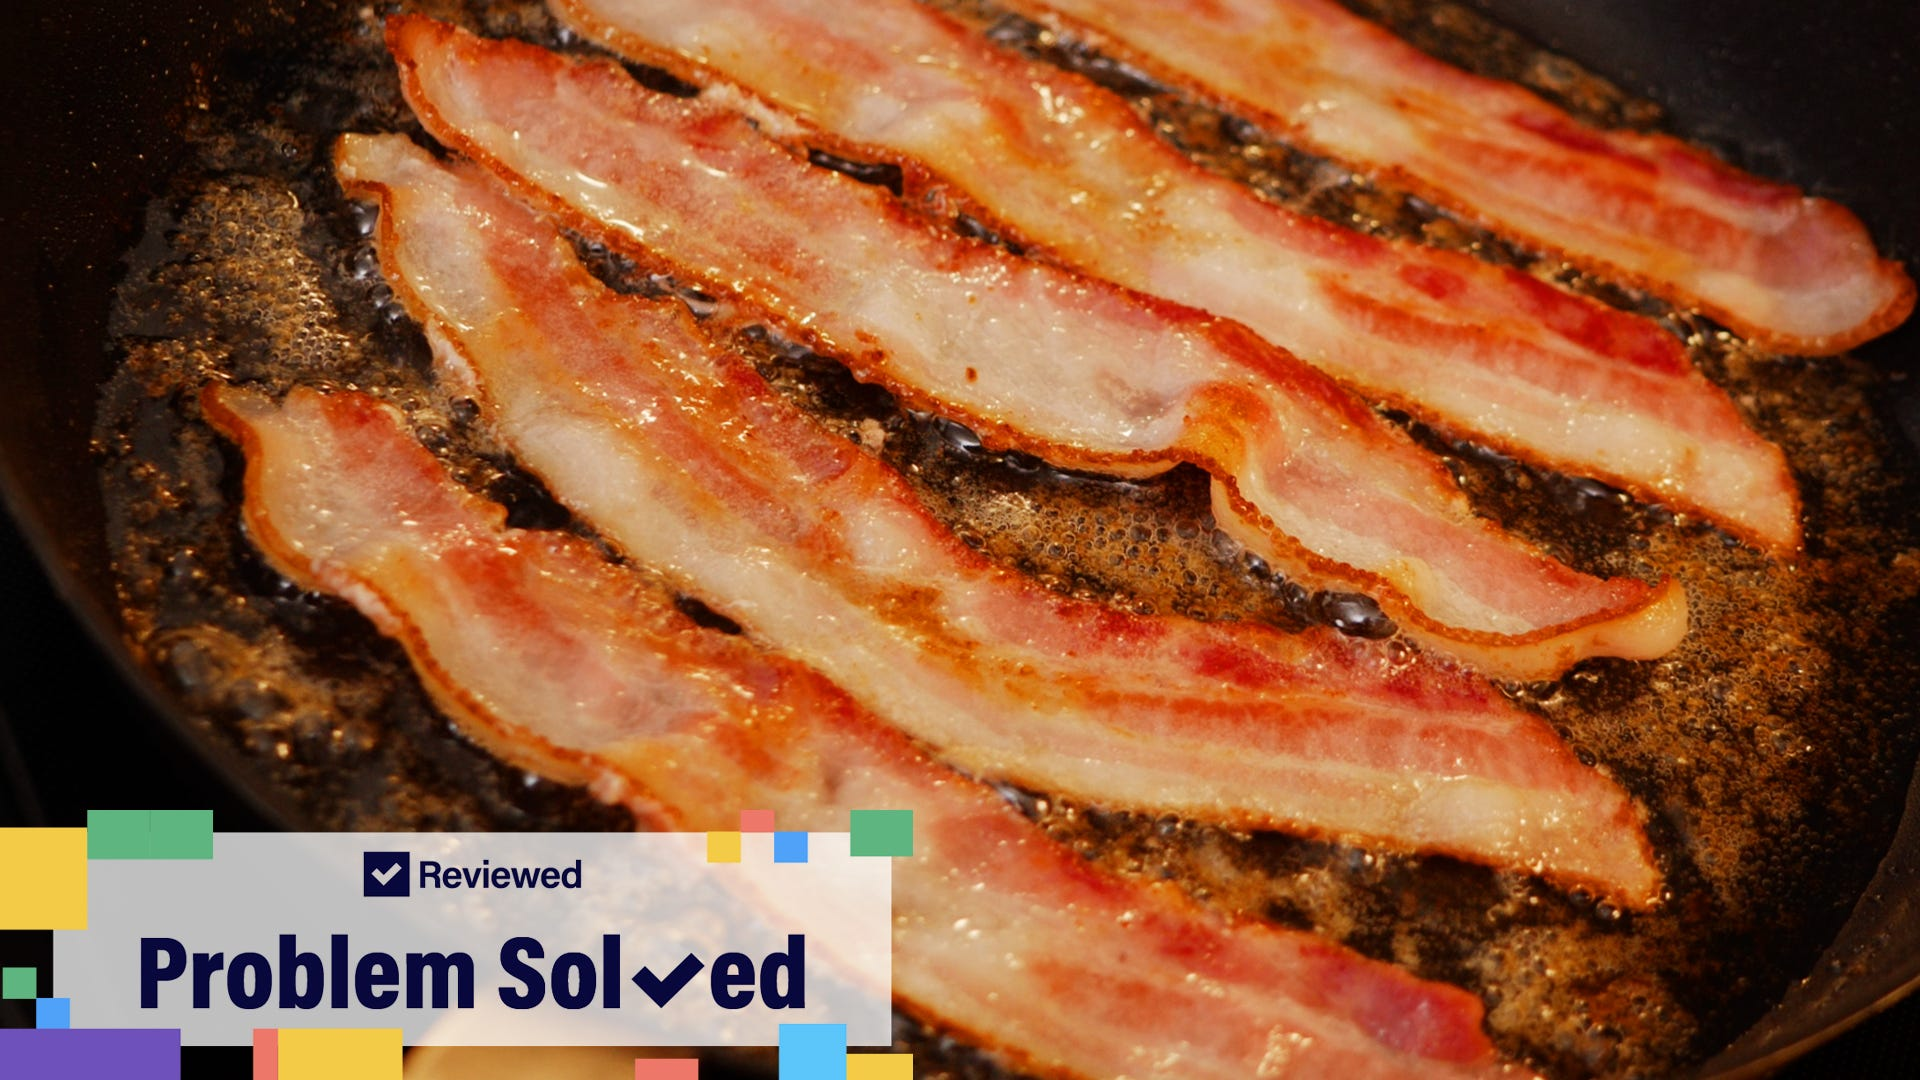 Bake your bacon for crispy results